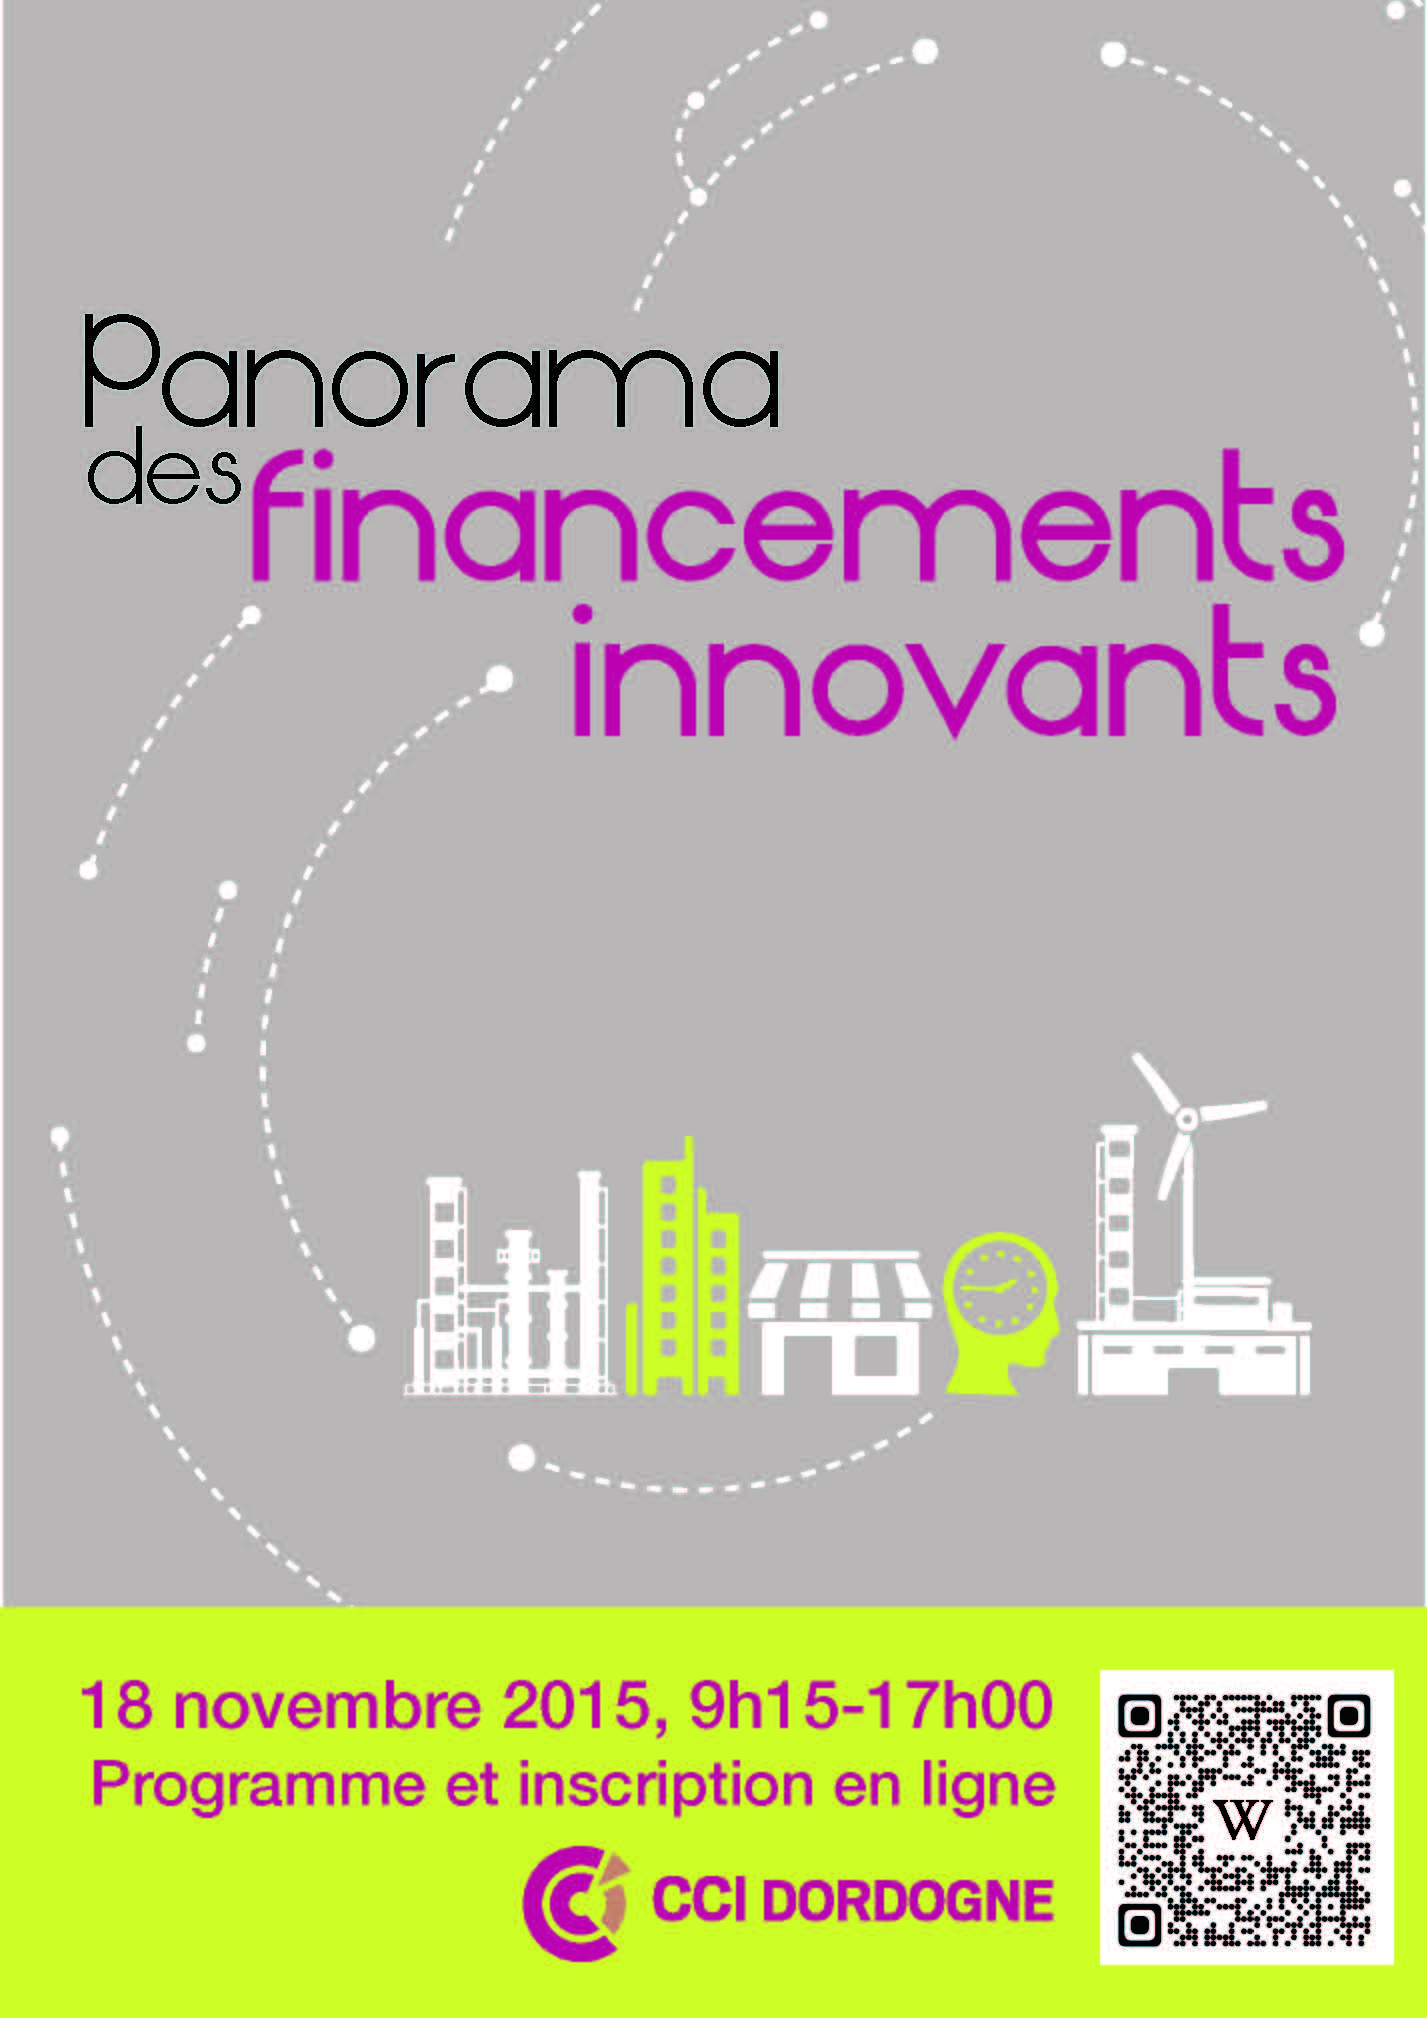 Panorama financements innovants